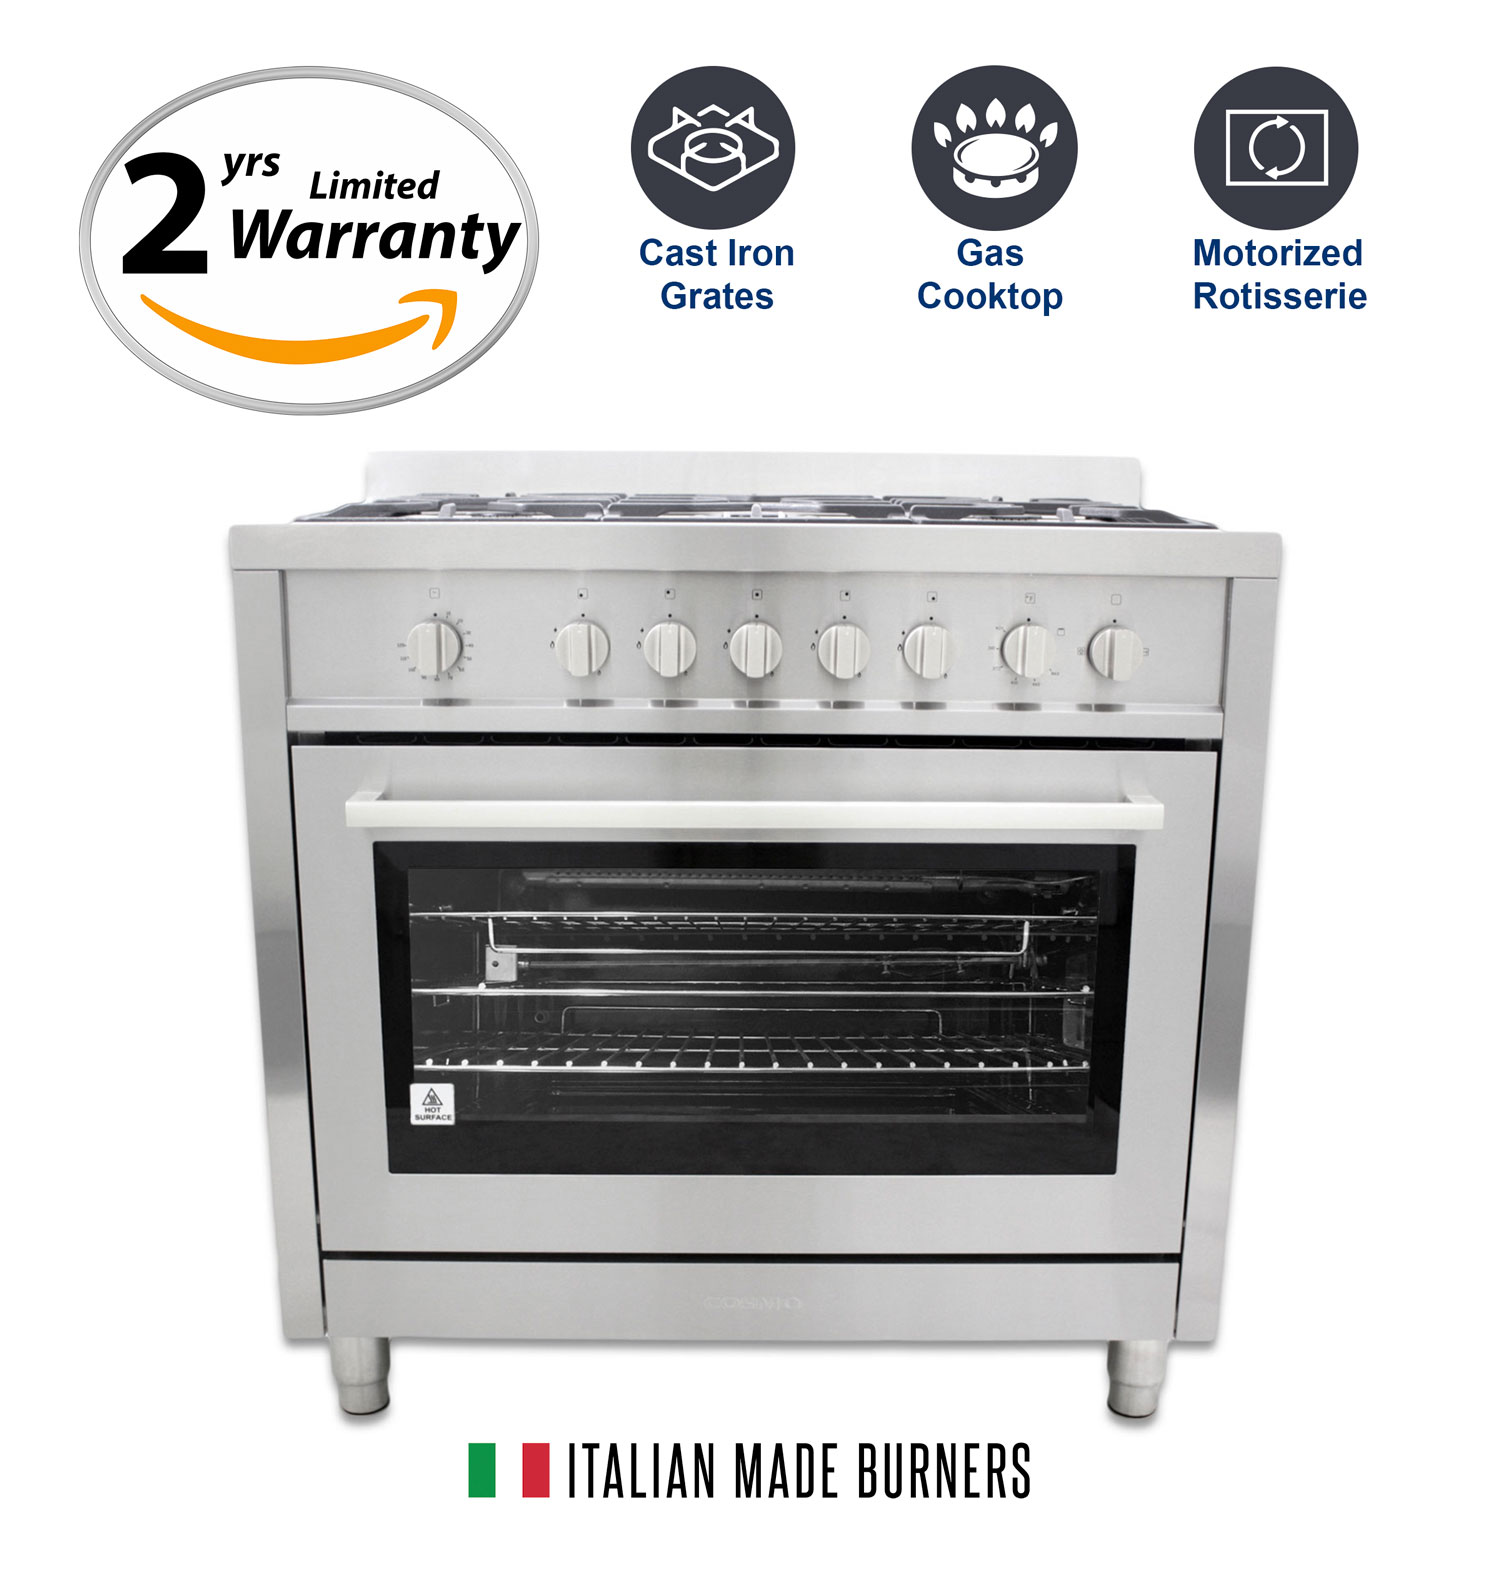 36 in gas range with 5 italian made burners and rotisserie